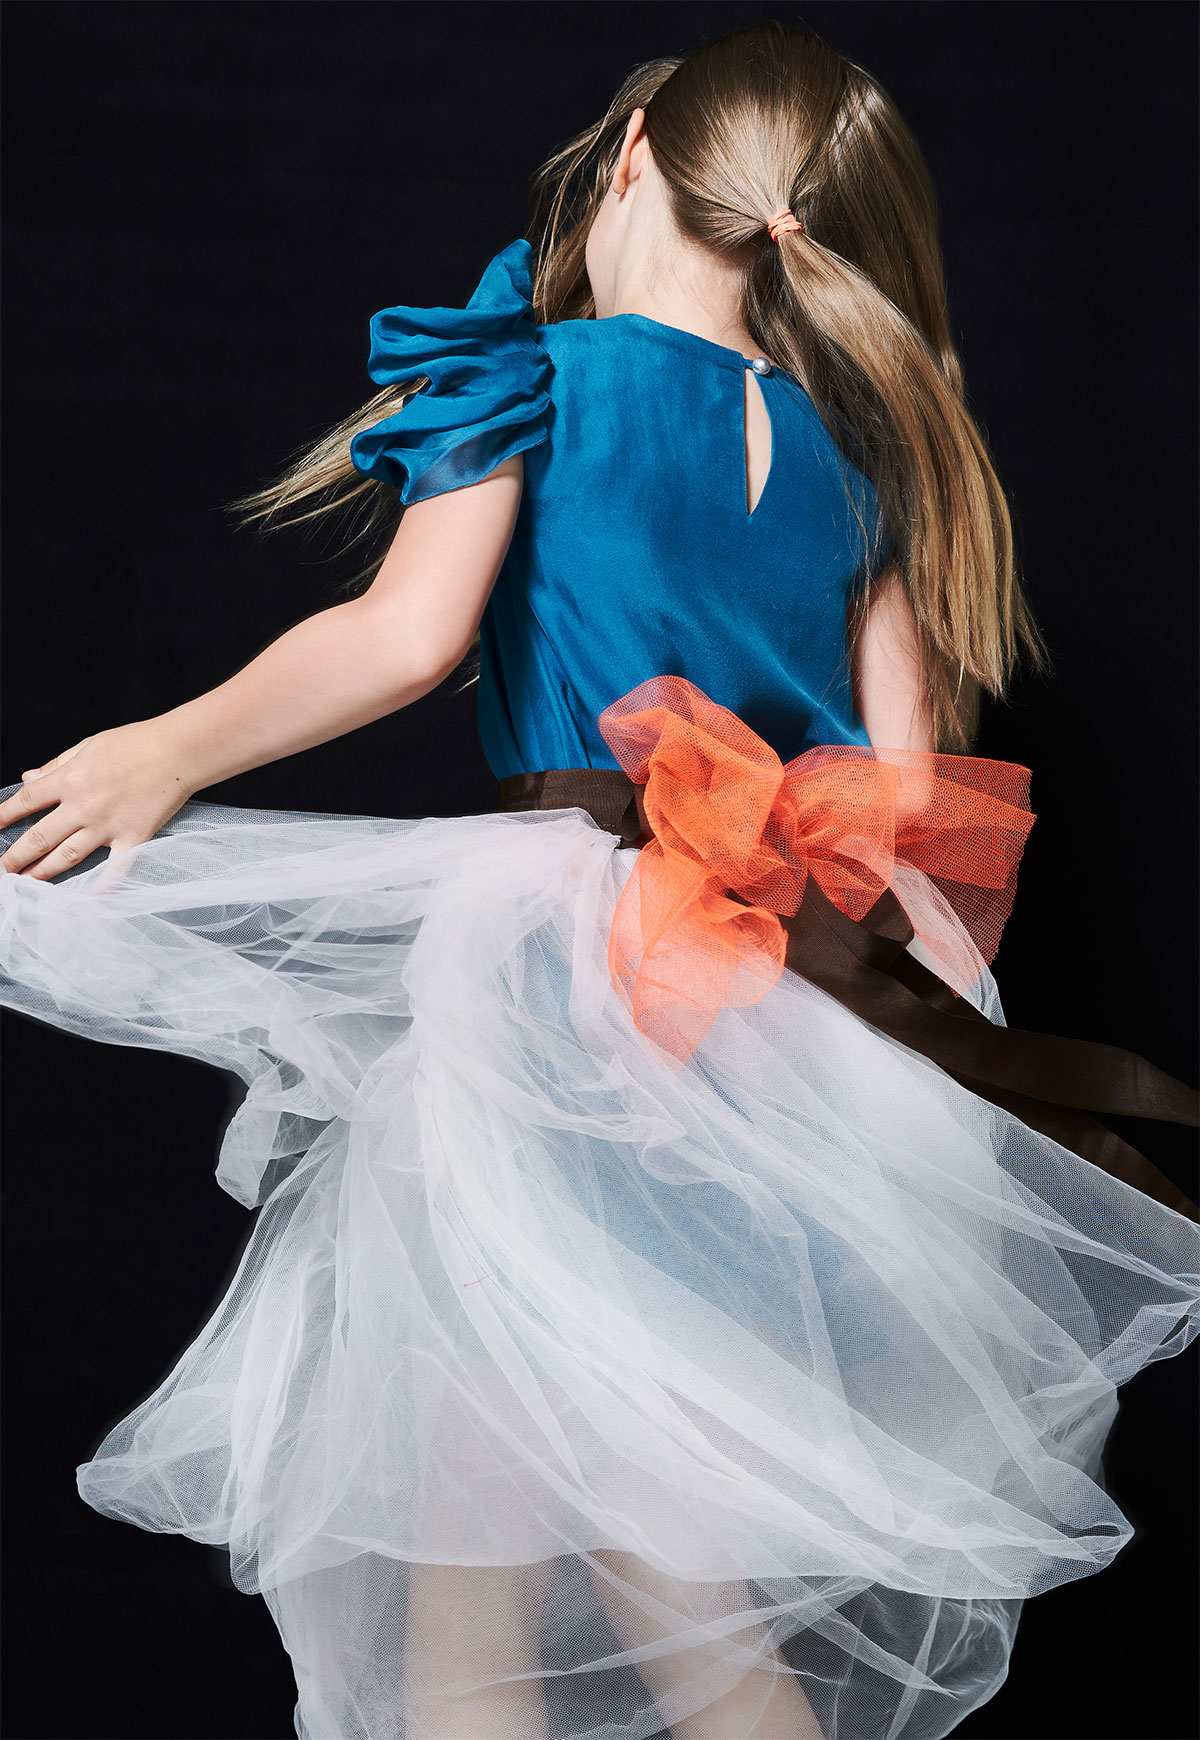 girl with a dress dancing